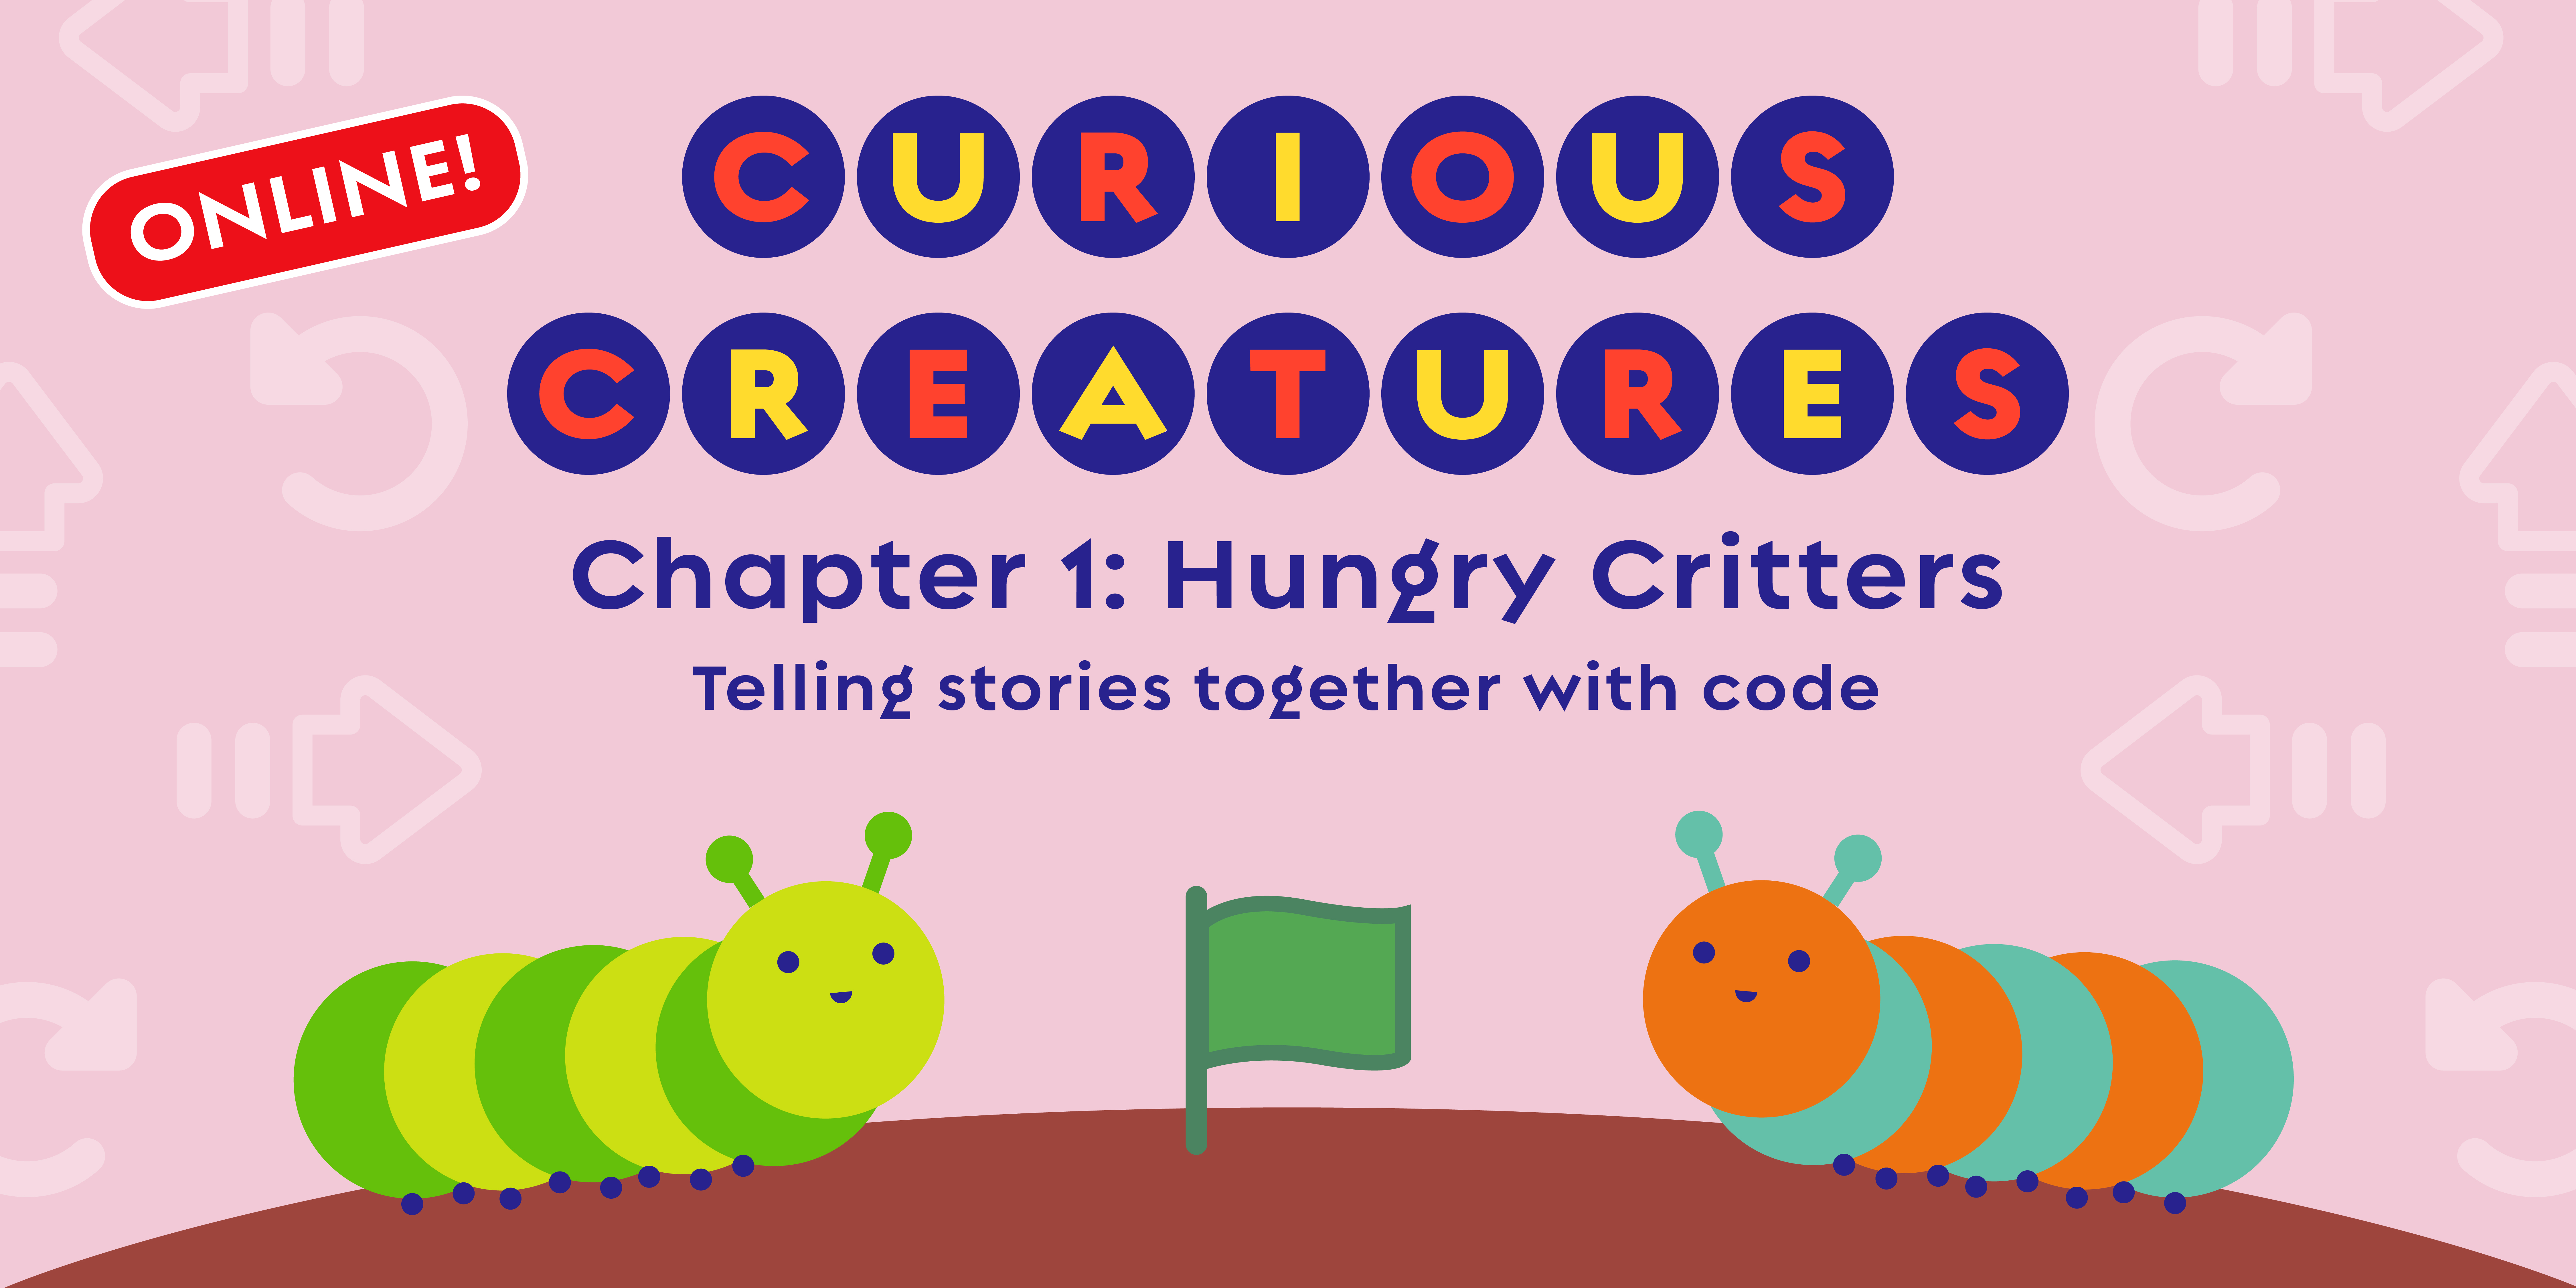 Behind the Scenes of Curious Creatures: The Making of our First Online Course for Preschoolers